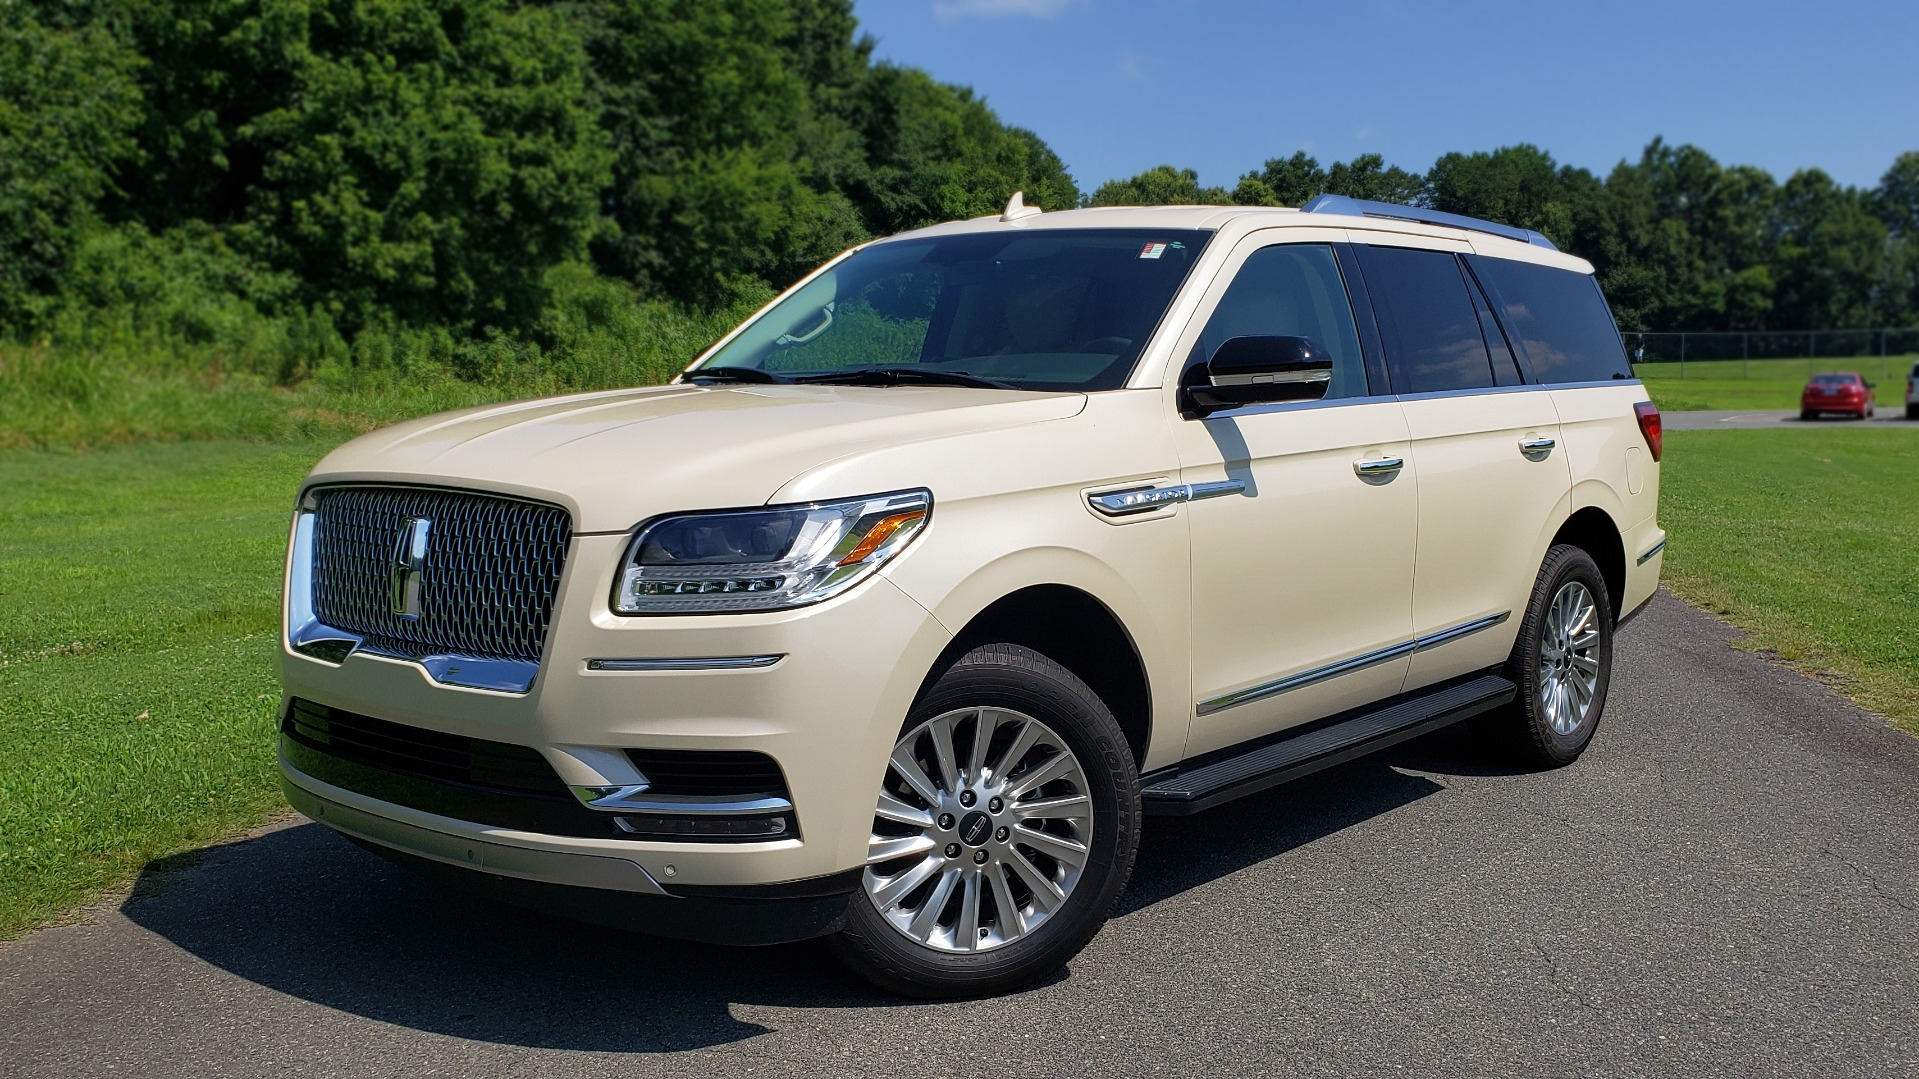 Used 2018 Lincoln NAVIGATOR PREMIERE 4X2 / TWIN-TURBO V6 / NAV / 3-ROW / REARVIEW for sale Sold at Formula Imports in Charlotte NC 28227 1